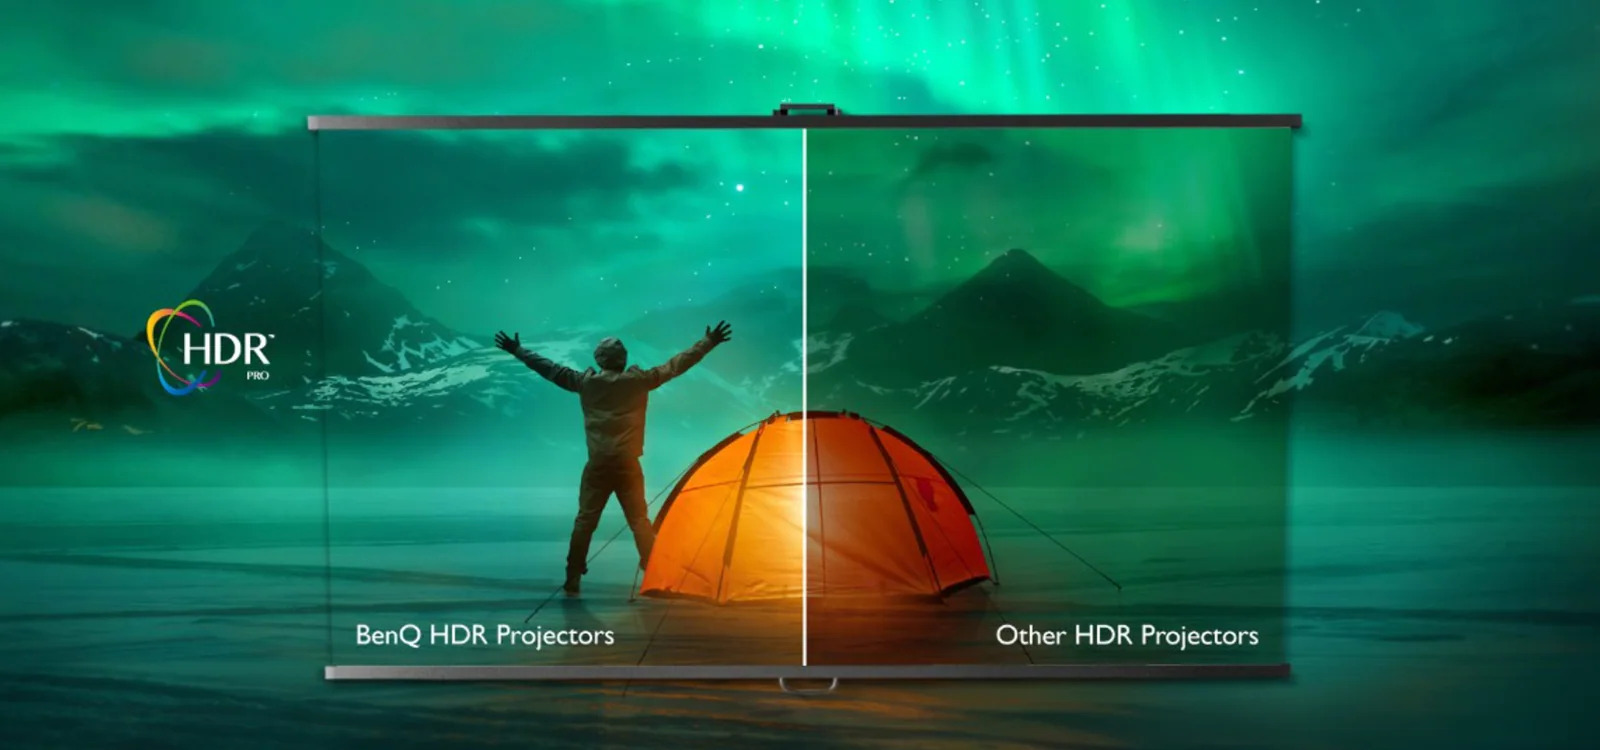 Image showing quality of Benq HDR Compared to other projectors